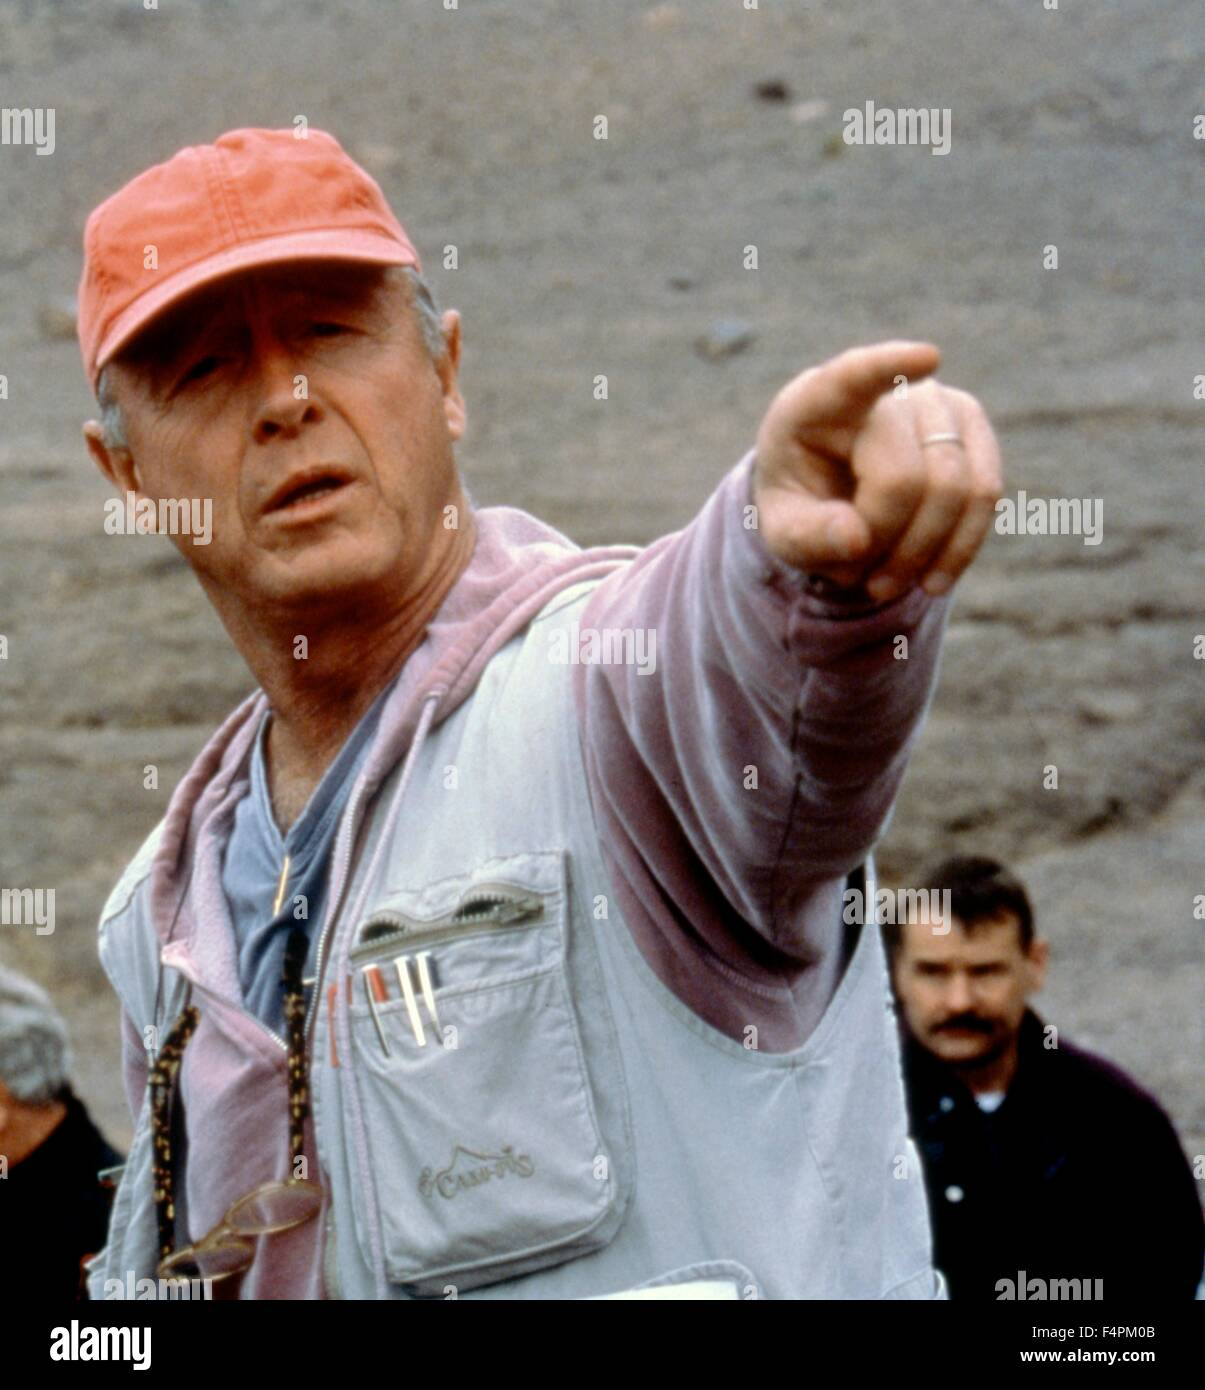 On the set, Tony Scott / Spy game / 2011 directed by Tony Scott [Universal Pictures] - Stock Image